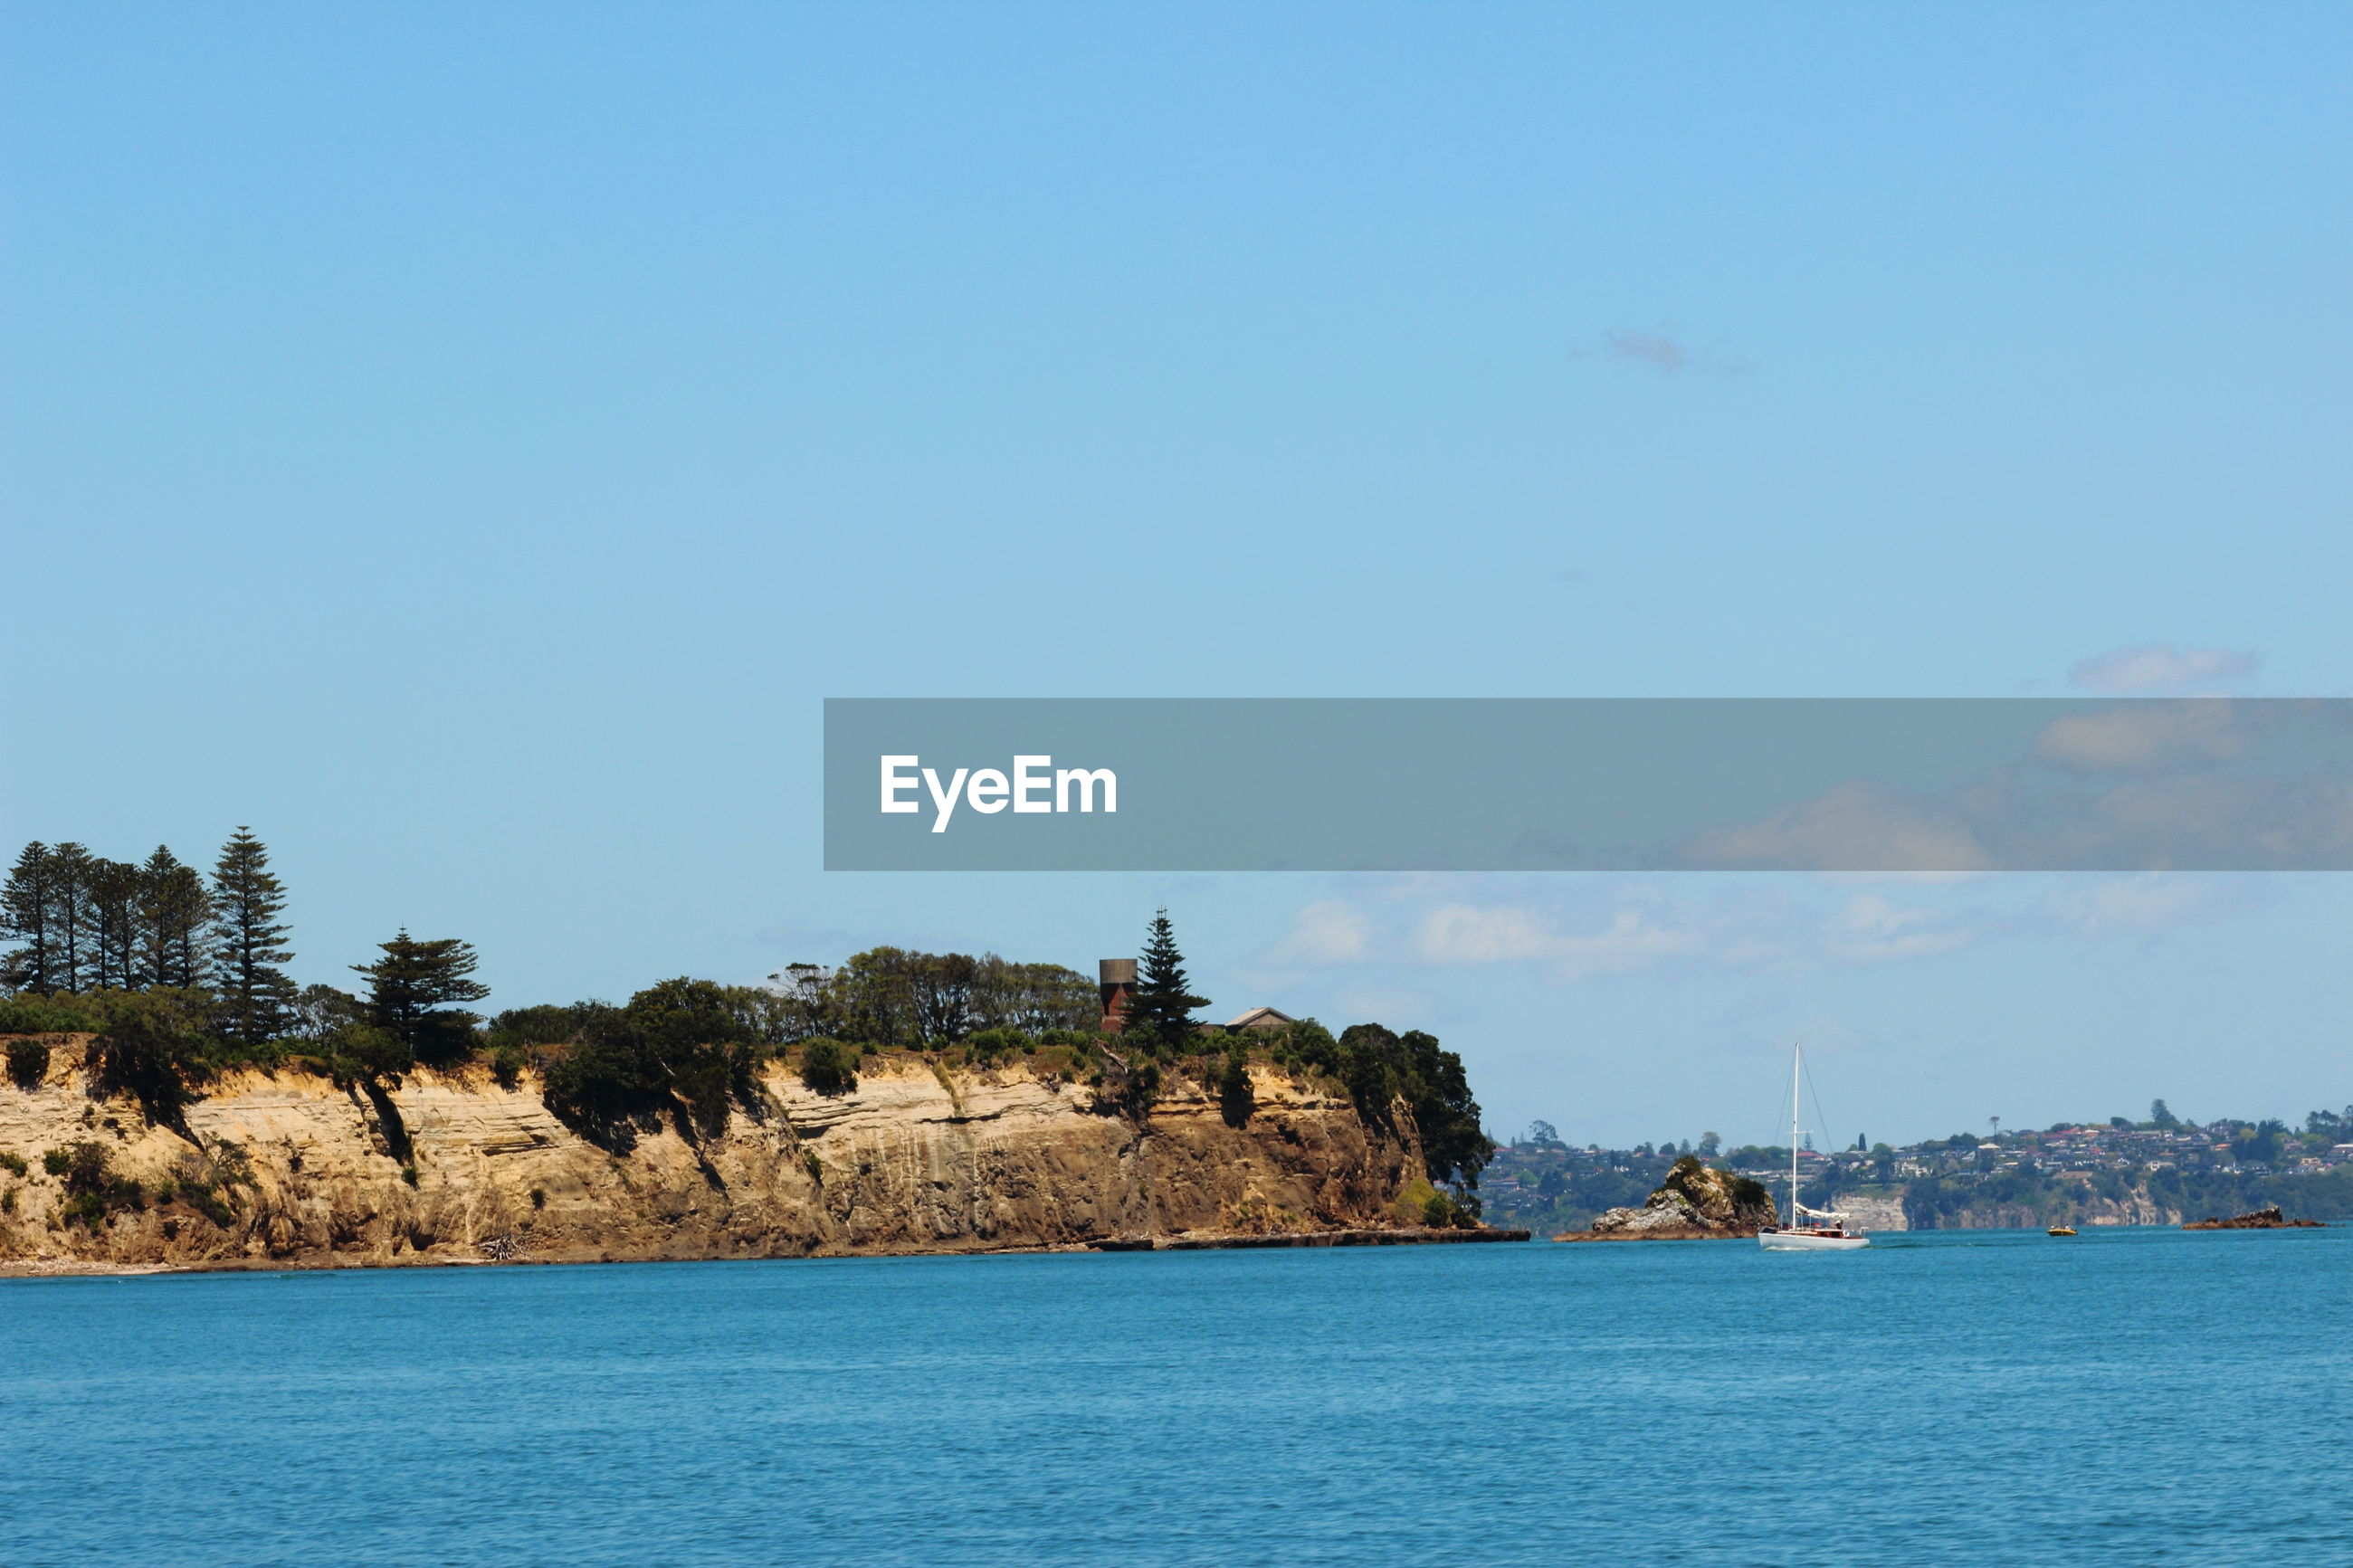 Auckland Clear Sky Coastline Sailing Ship Tree Architecture Beauty In Nature Blue Sky Cliff Day Nature New Zealand No People Ocean Outdoors Sailing Scenery Sea Sky View Into Land Water Waterfront The Great Outdoors - 2018 EyeEm Awards